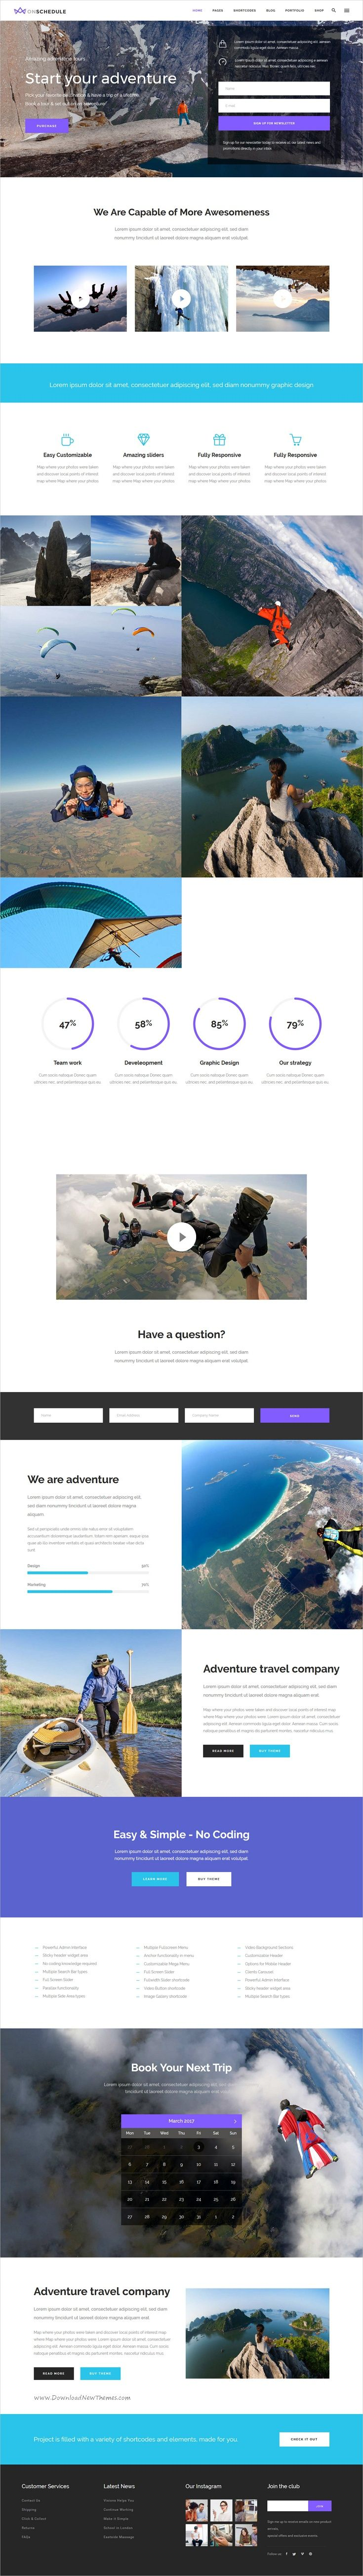 OnSchedule is an excellent 12in1 responsive #WordPress theme for #journey #tour bu…